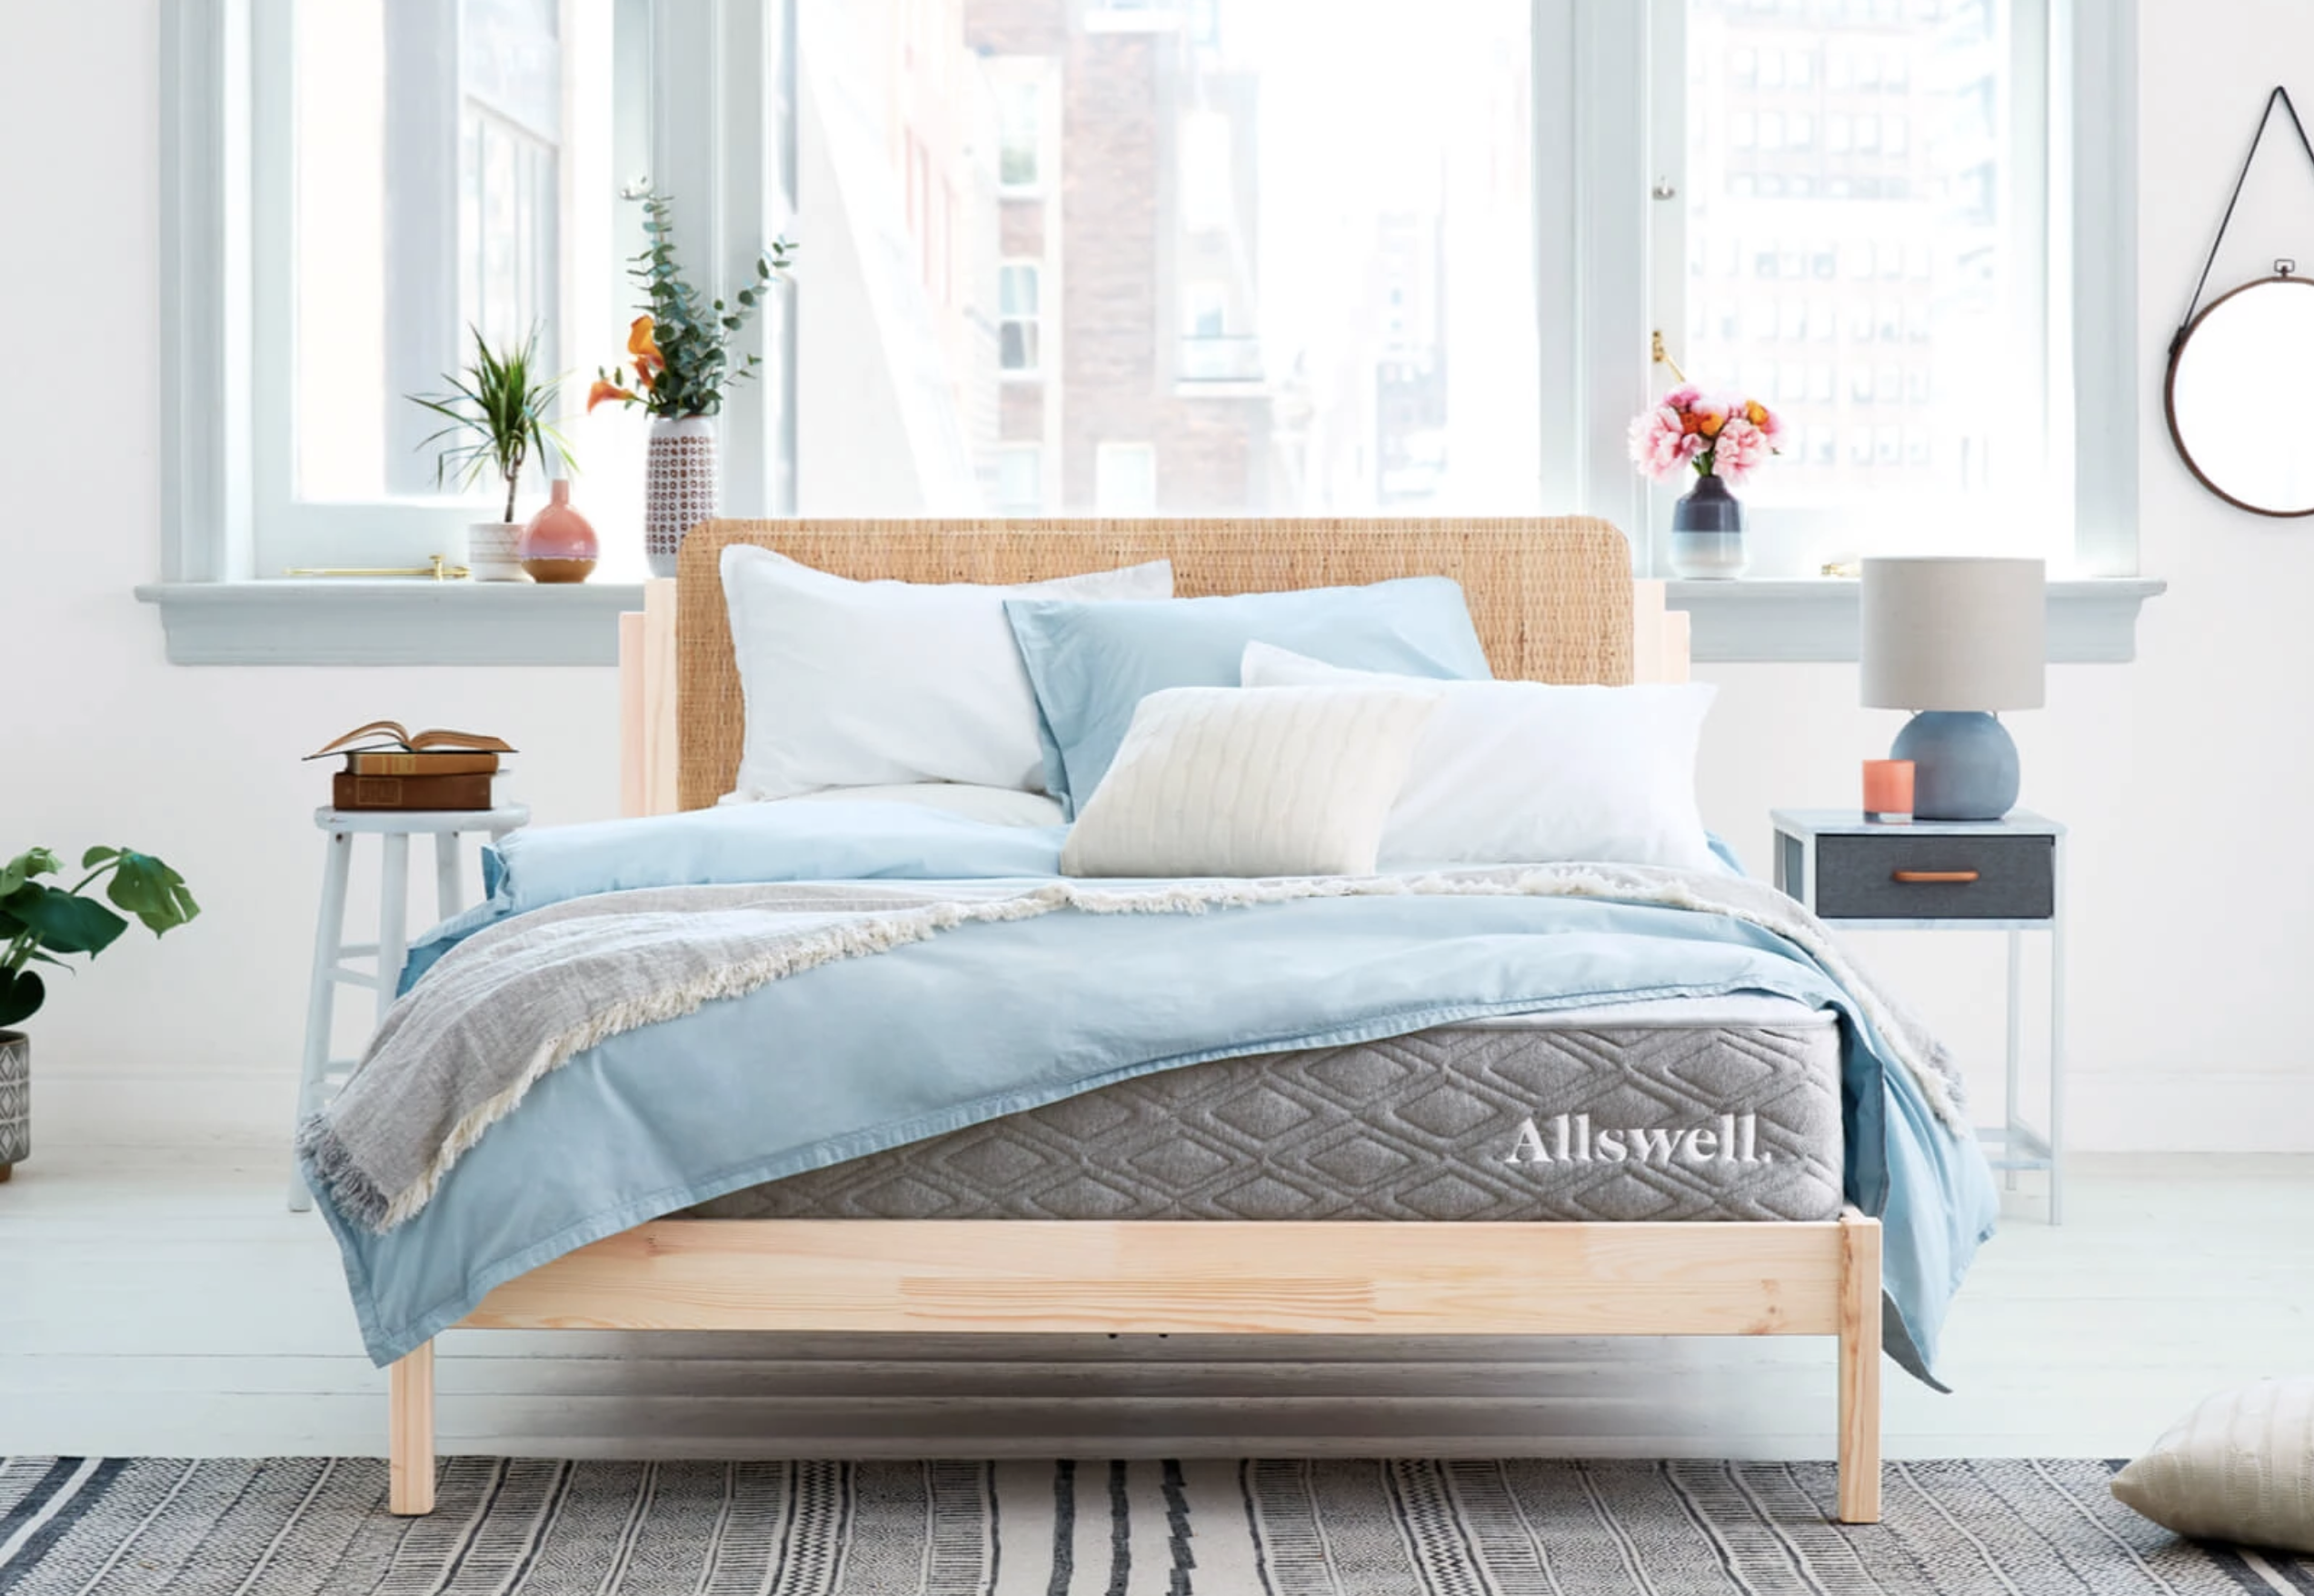 Best mattress deals 2021: See the spring sales from Casper, Helix, Layla, Leesa, Nectar and more     - CNET